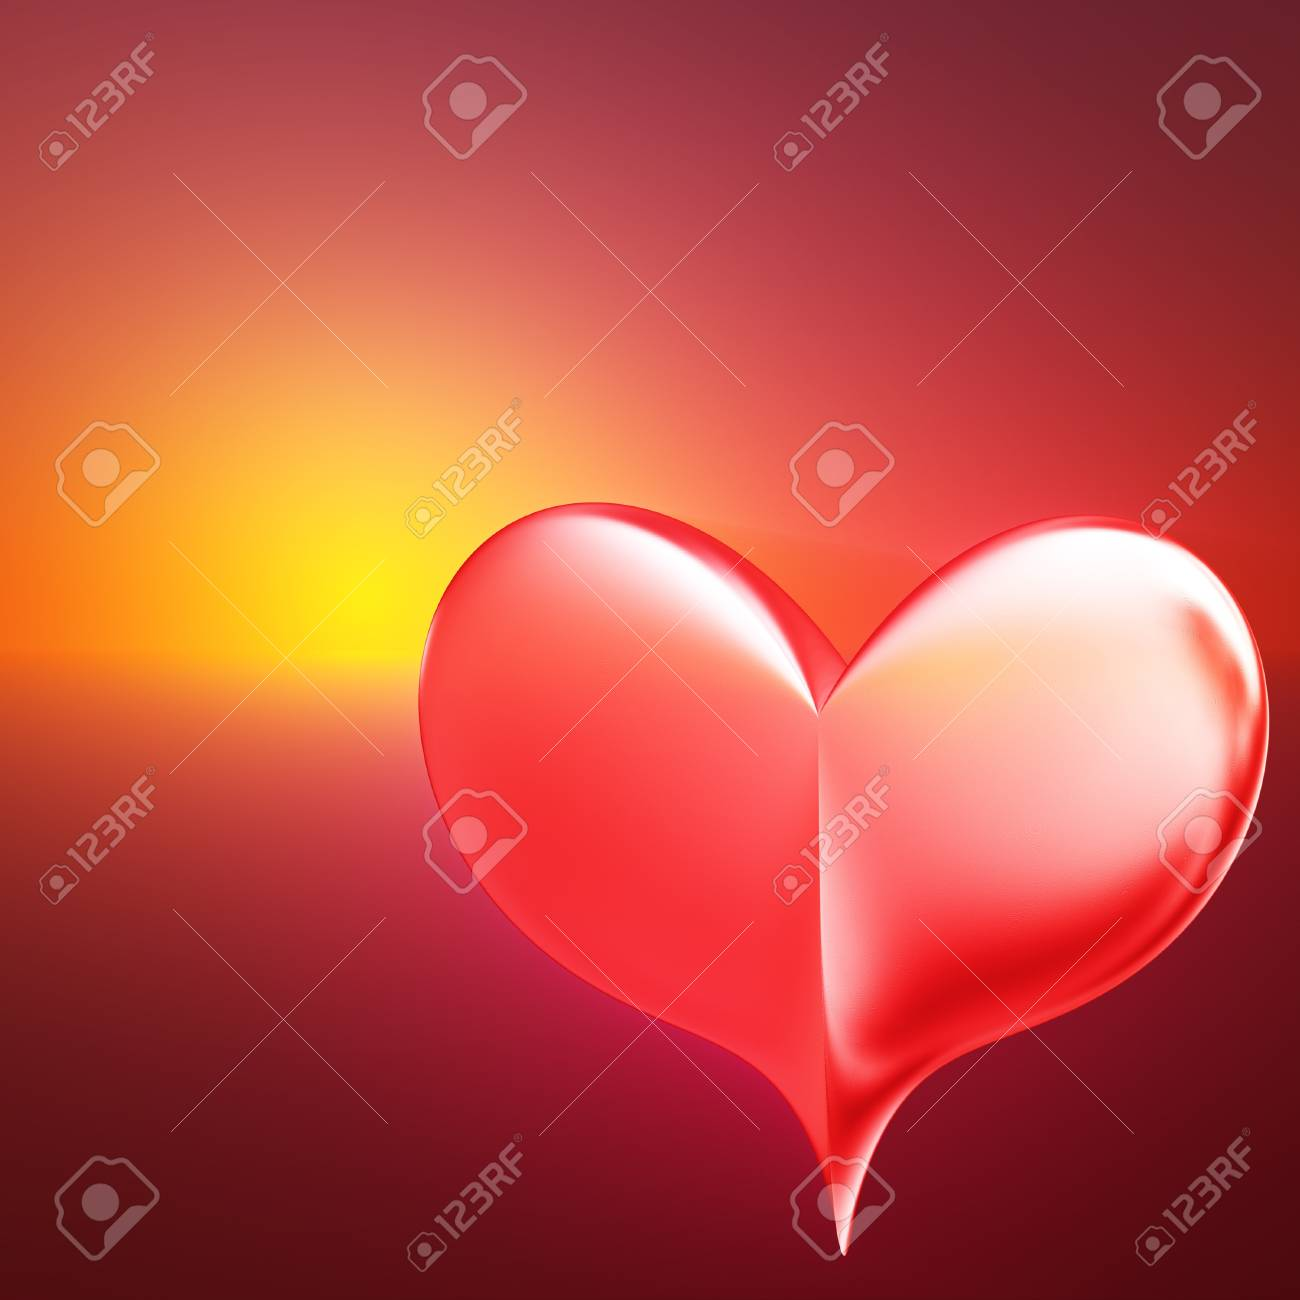 An abstract illustration with heart against the setting sun Stock Illustration - 11876019